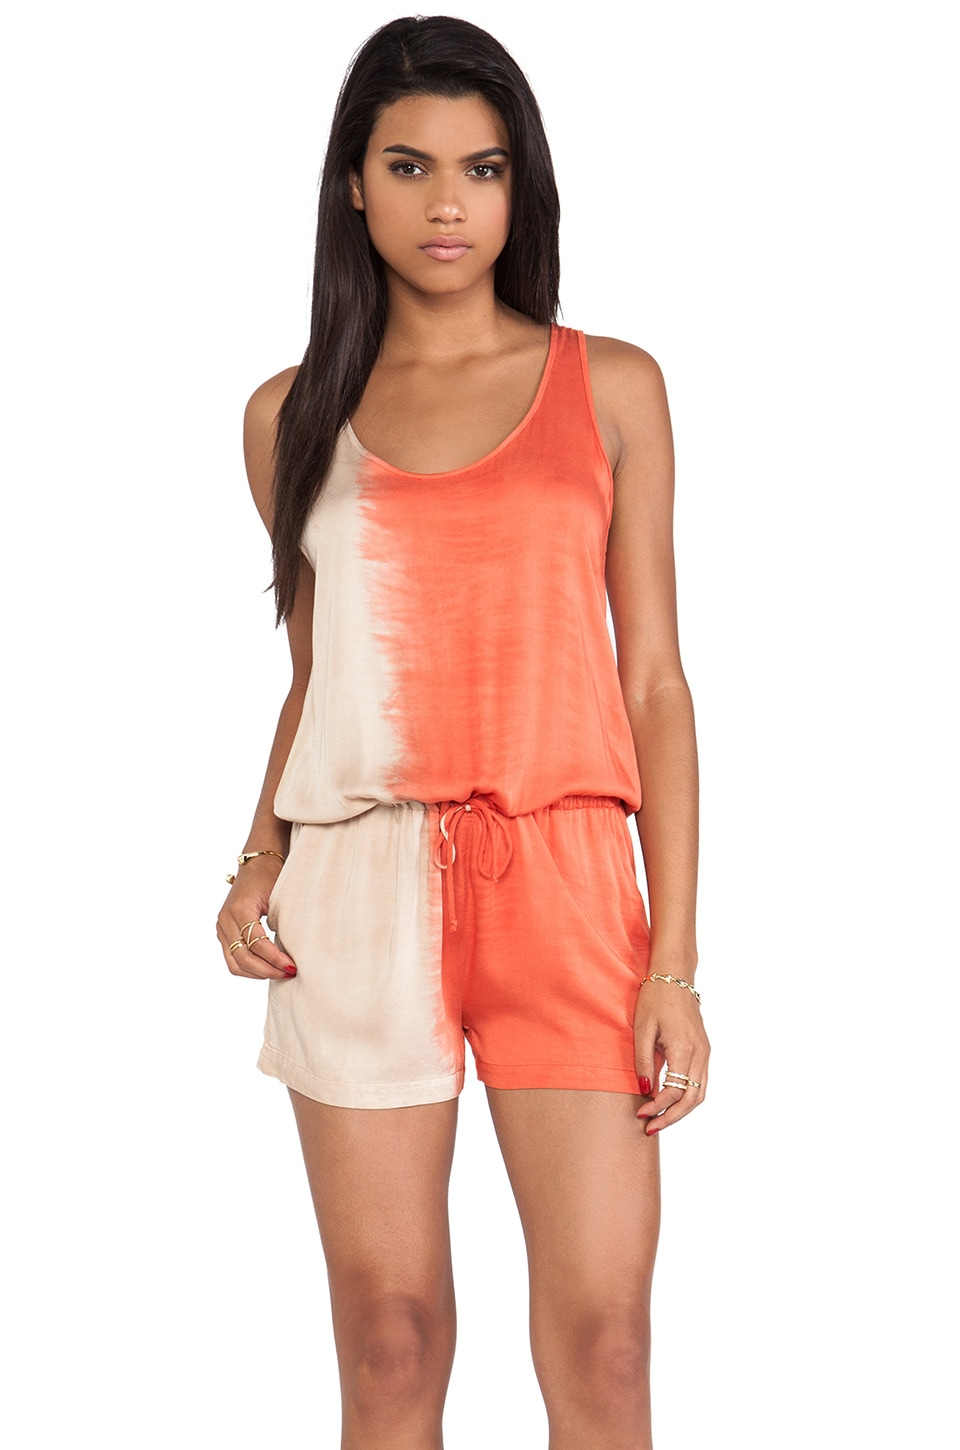 Kain Olympia Romper in Taupe to Sienna Orange